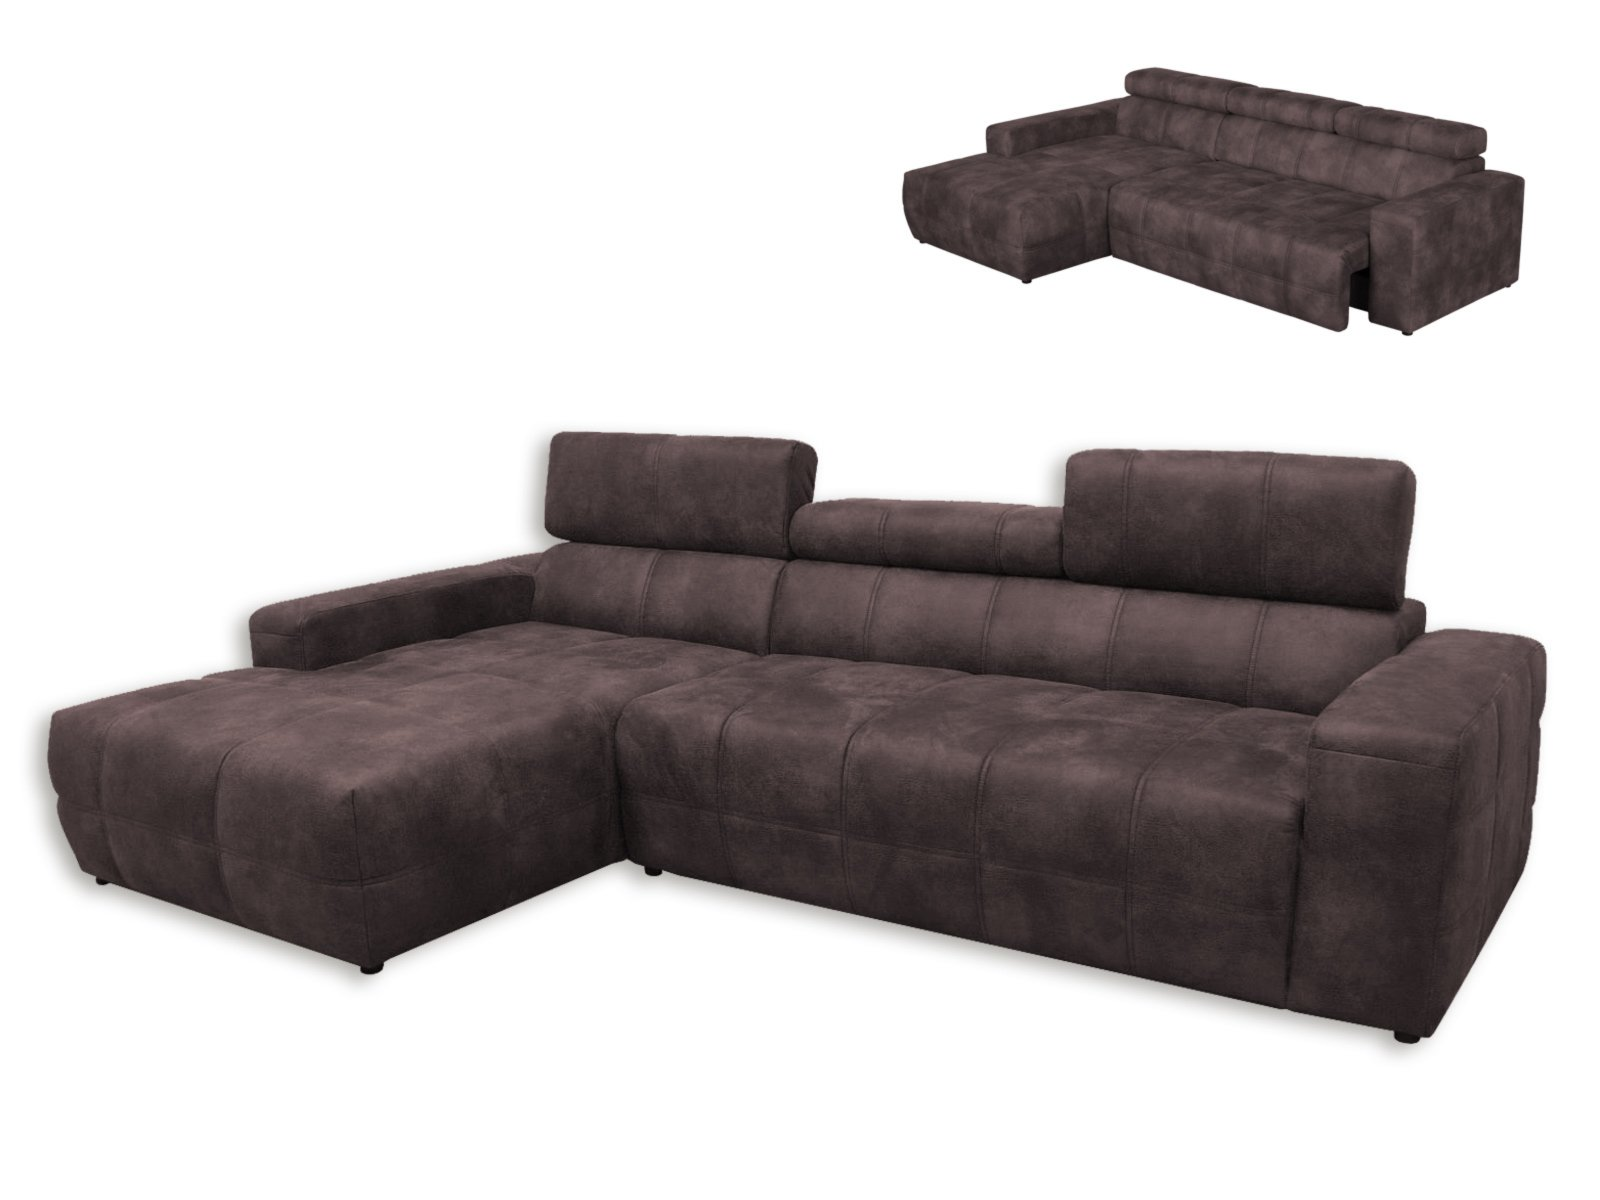 ecksofa dunkelbraun recamiere links mit kopfteil. Black Bedroom Furniture Sets. Home Design Ideas